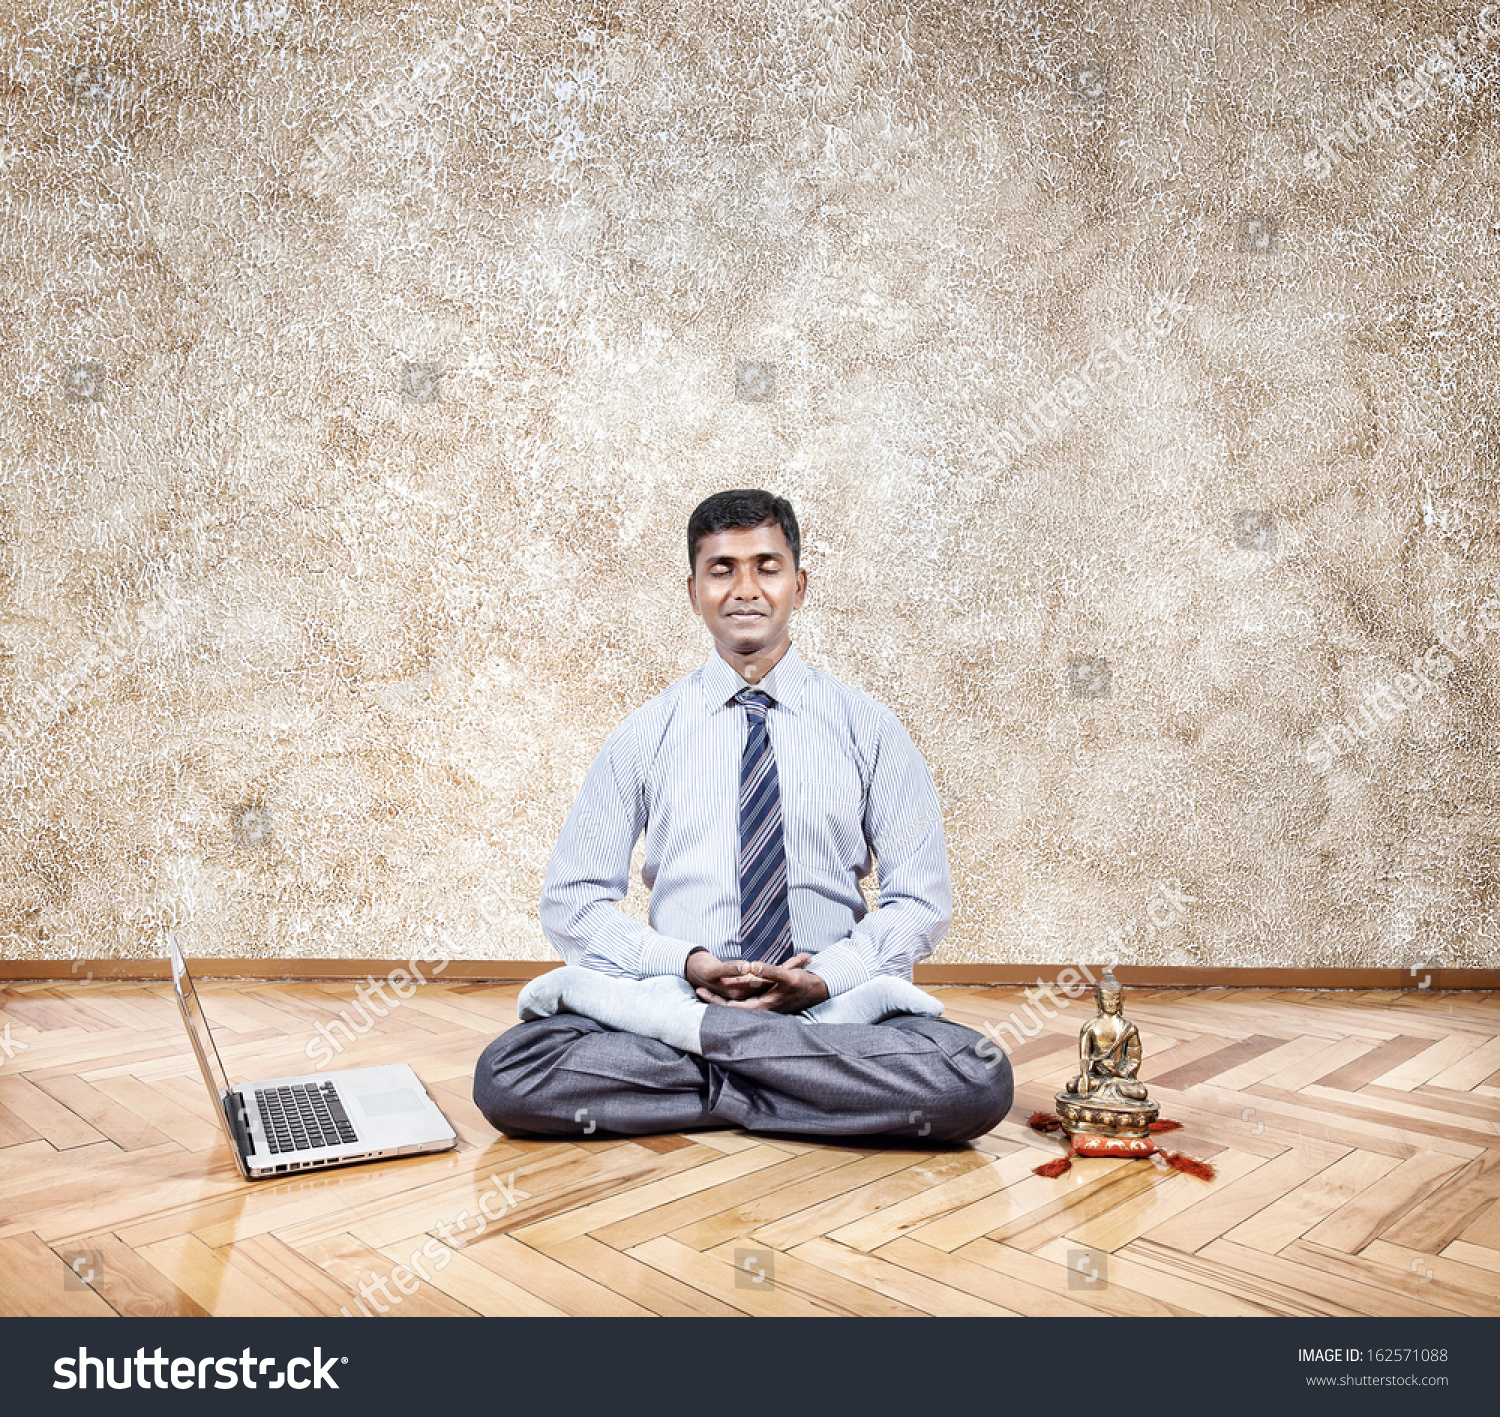 office meditation. office meditation businessman doing nearby laptop and buddha statue in the flmb inside